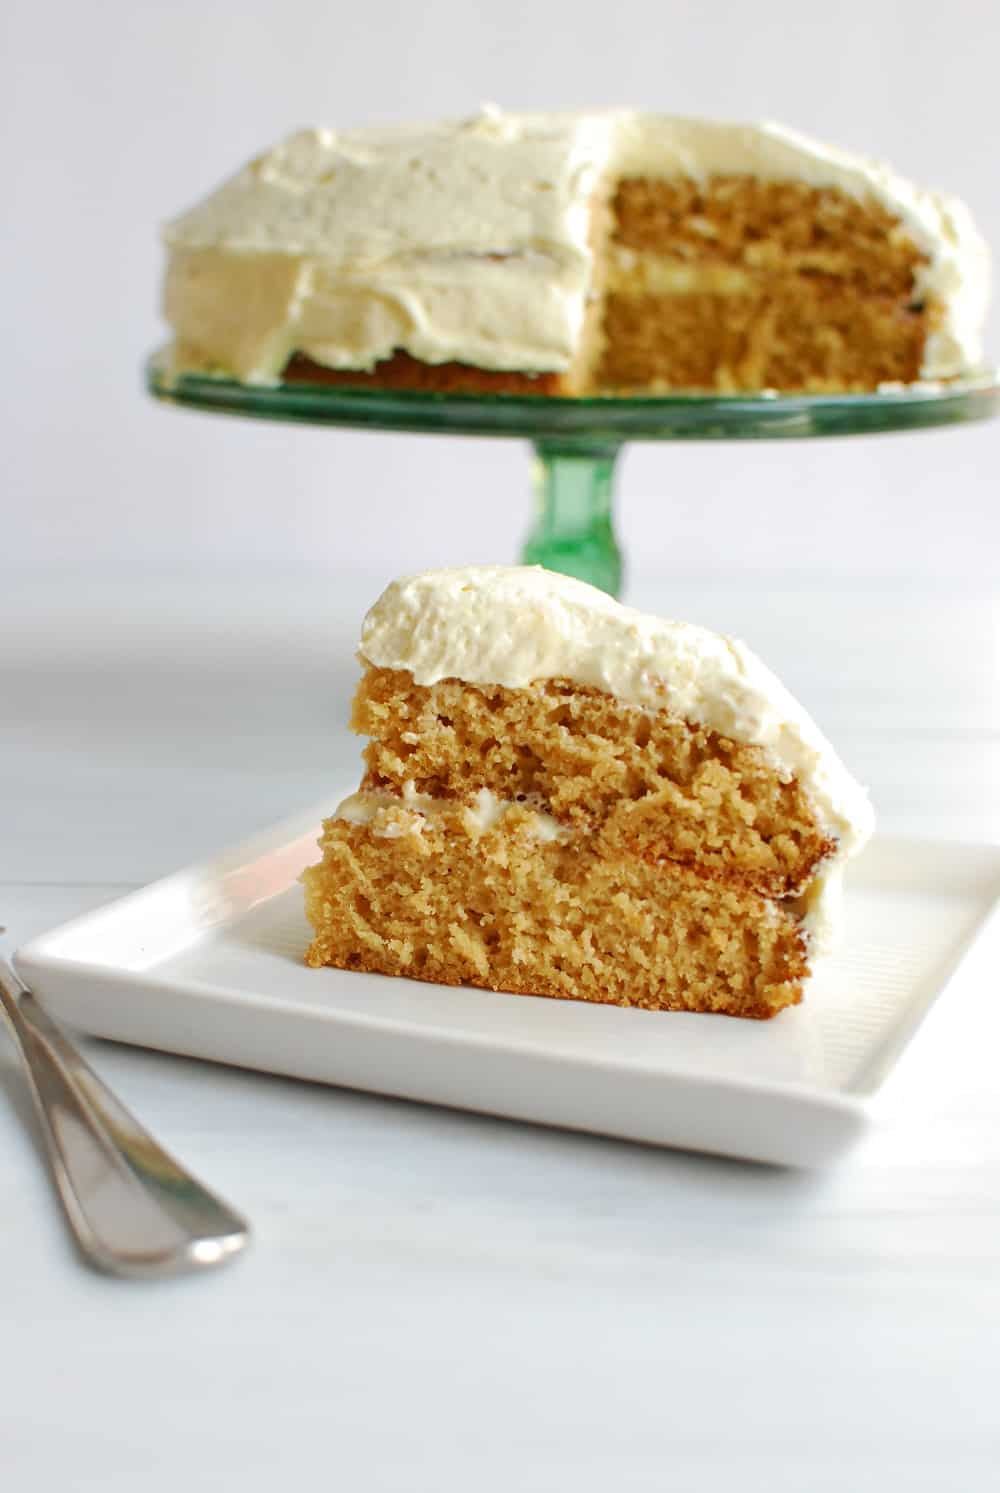 a slice of gluten free dairy free cake with vanilla frosting